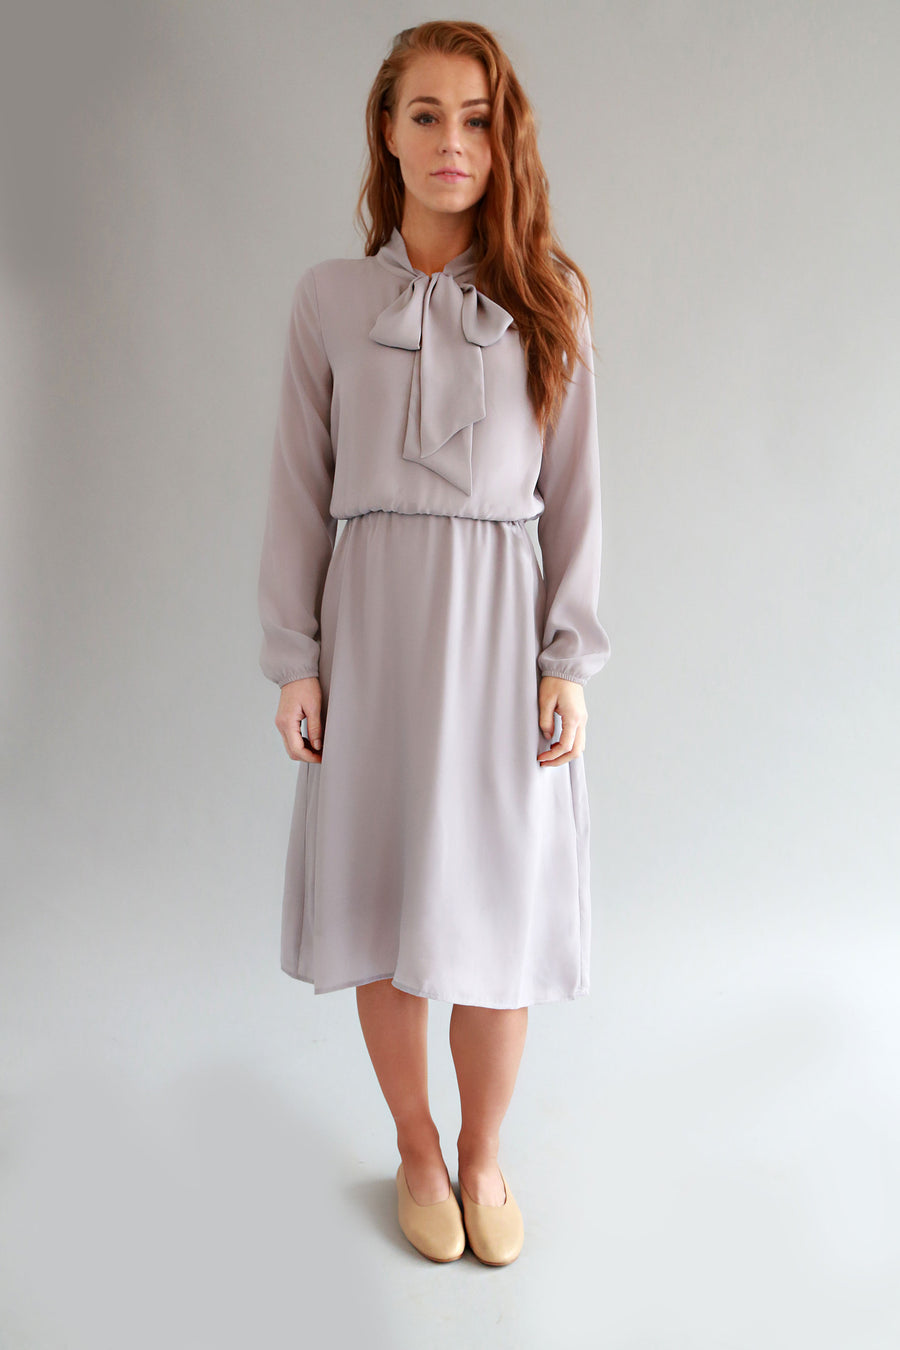 LILAC GREY SOL DRESS - SOLIKA